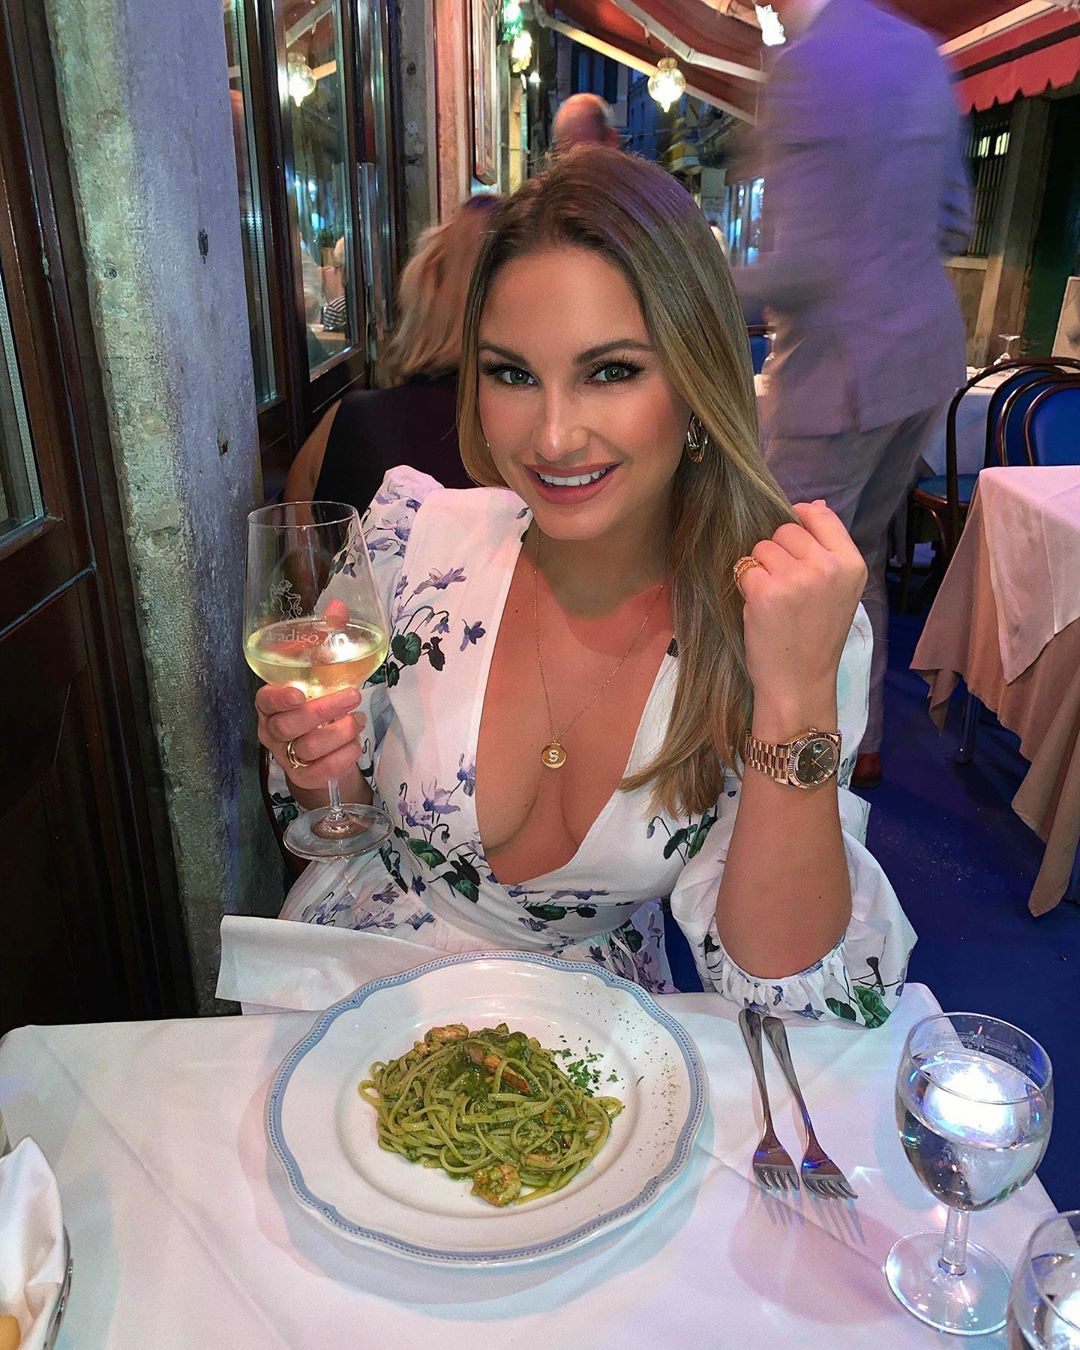 Image may contain: reality TV rich list, UK, reality TV, net worth, earnings, money, salary, rich, worth, Samantha Faiers, Sam, TOWIE, Dish, Plant, Food Court, Meal, Home Decor, Glass, Food, Restaurant, Human, Person